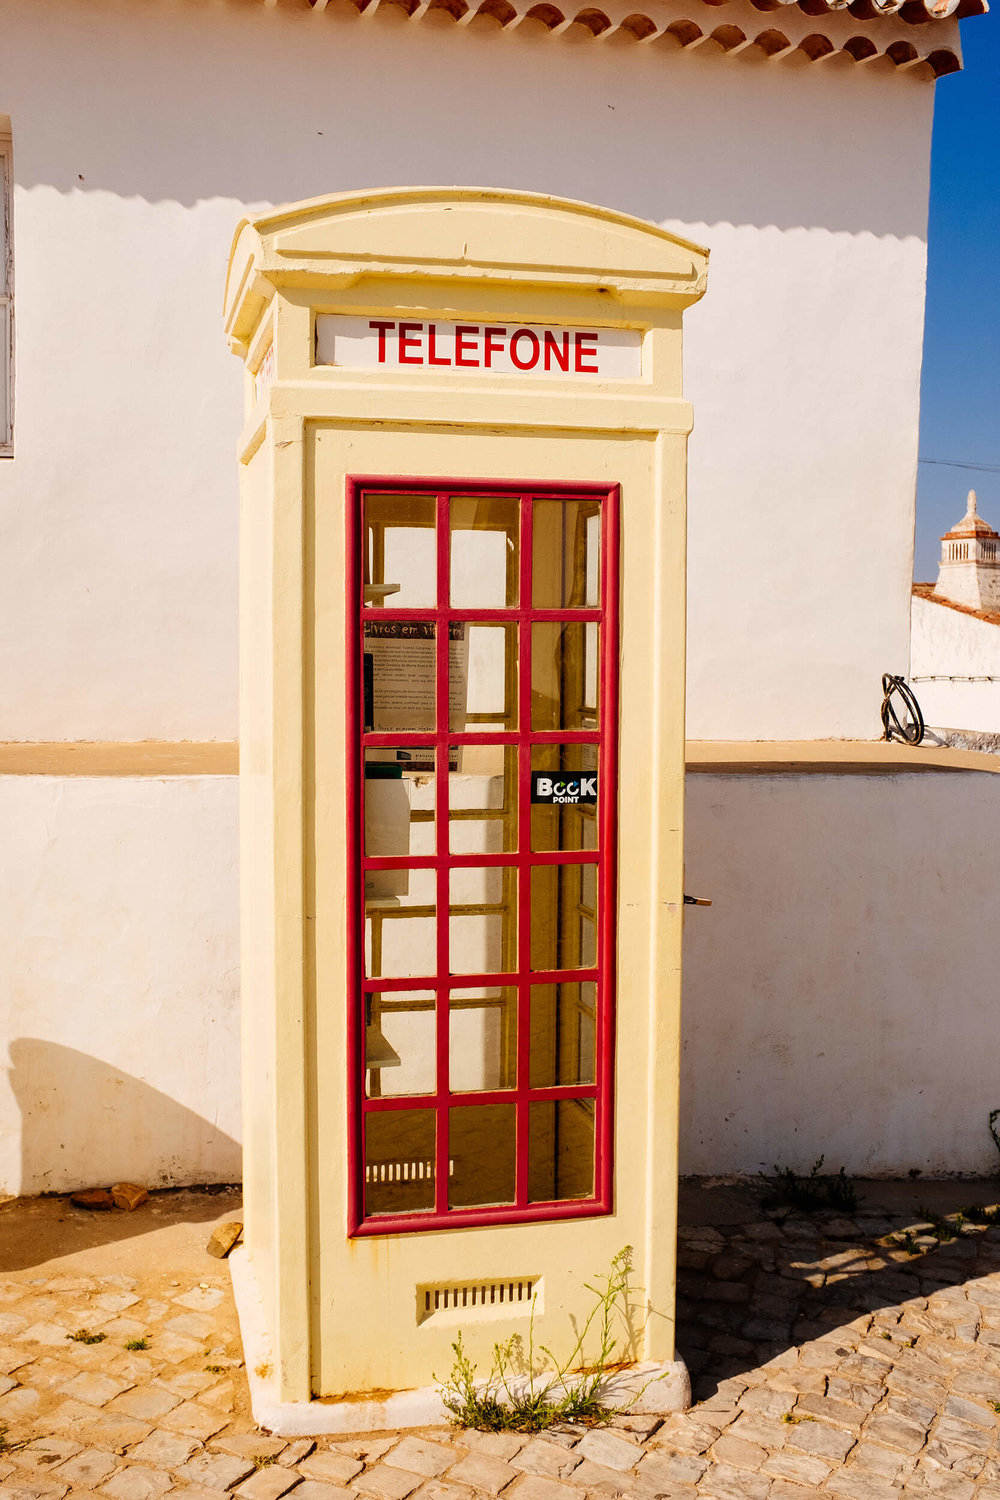 This old telephone booth has been turned into a tiny library in the village of Cacela Velha